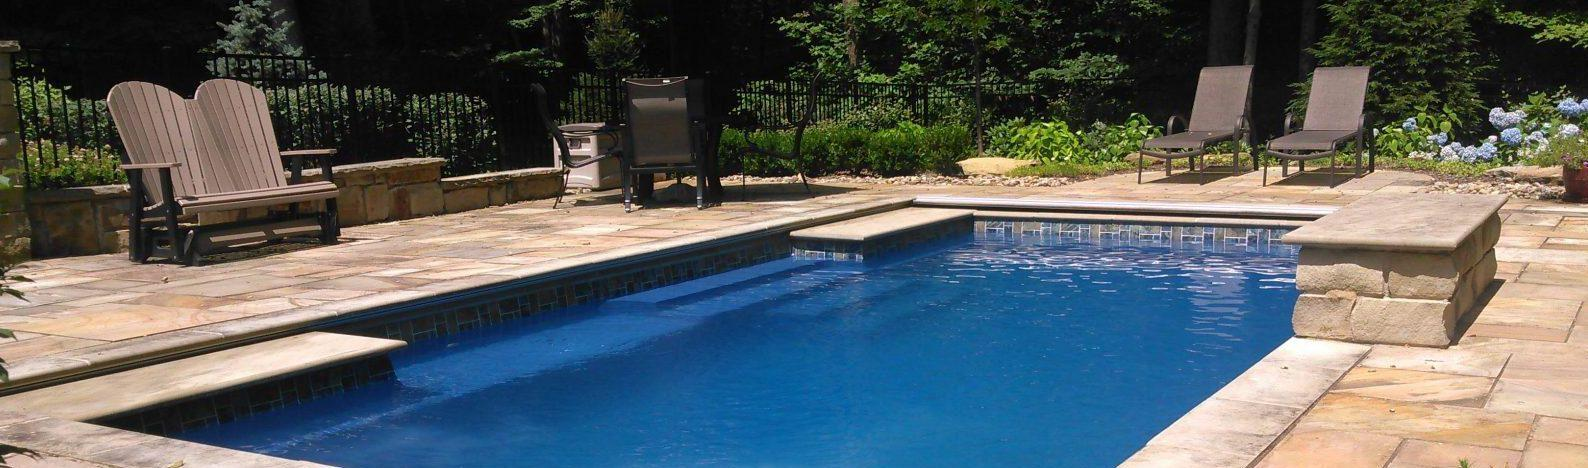 Pool Products That Last